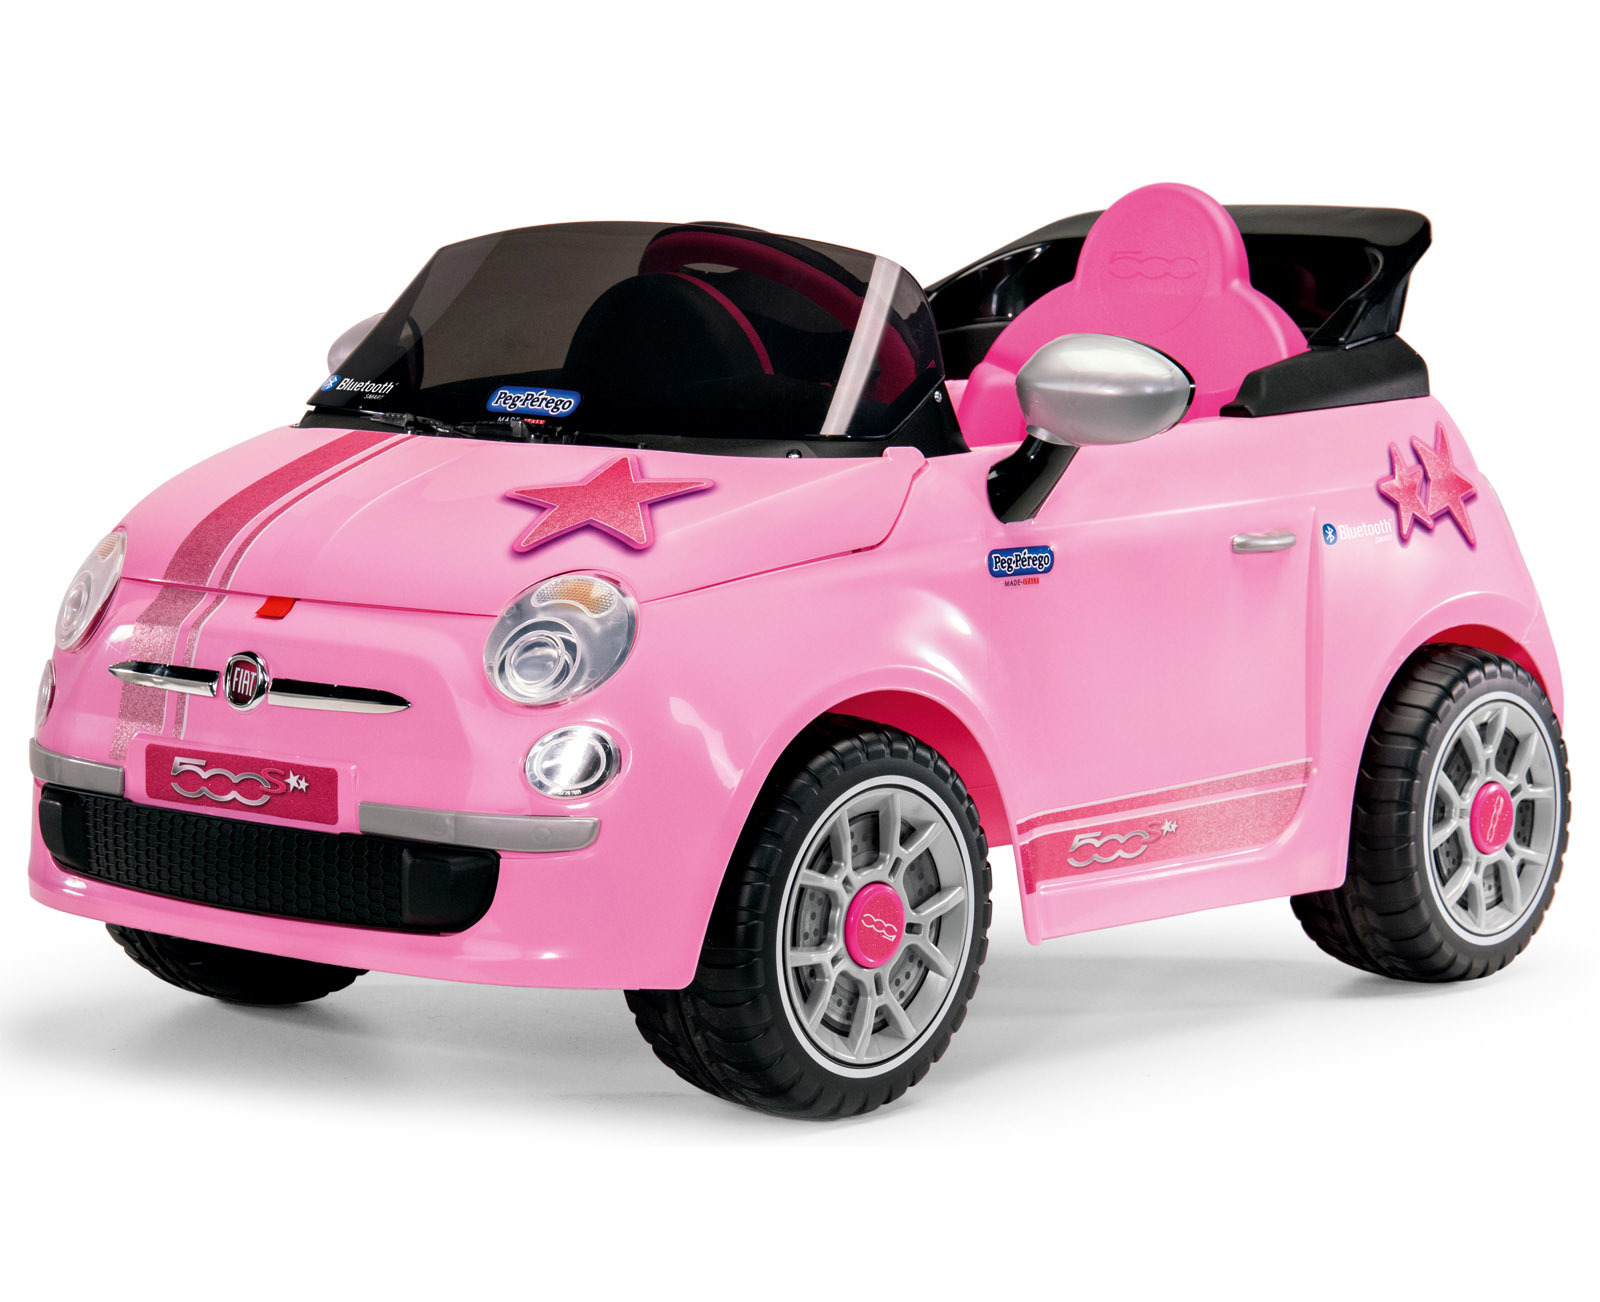 peg perego electrical car 6v fiat 500 s pink 285898 perfect toys pantazopoulos. Black Bedroom Furniture Sets. Home Design Ideas